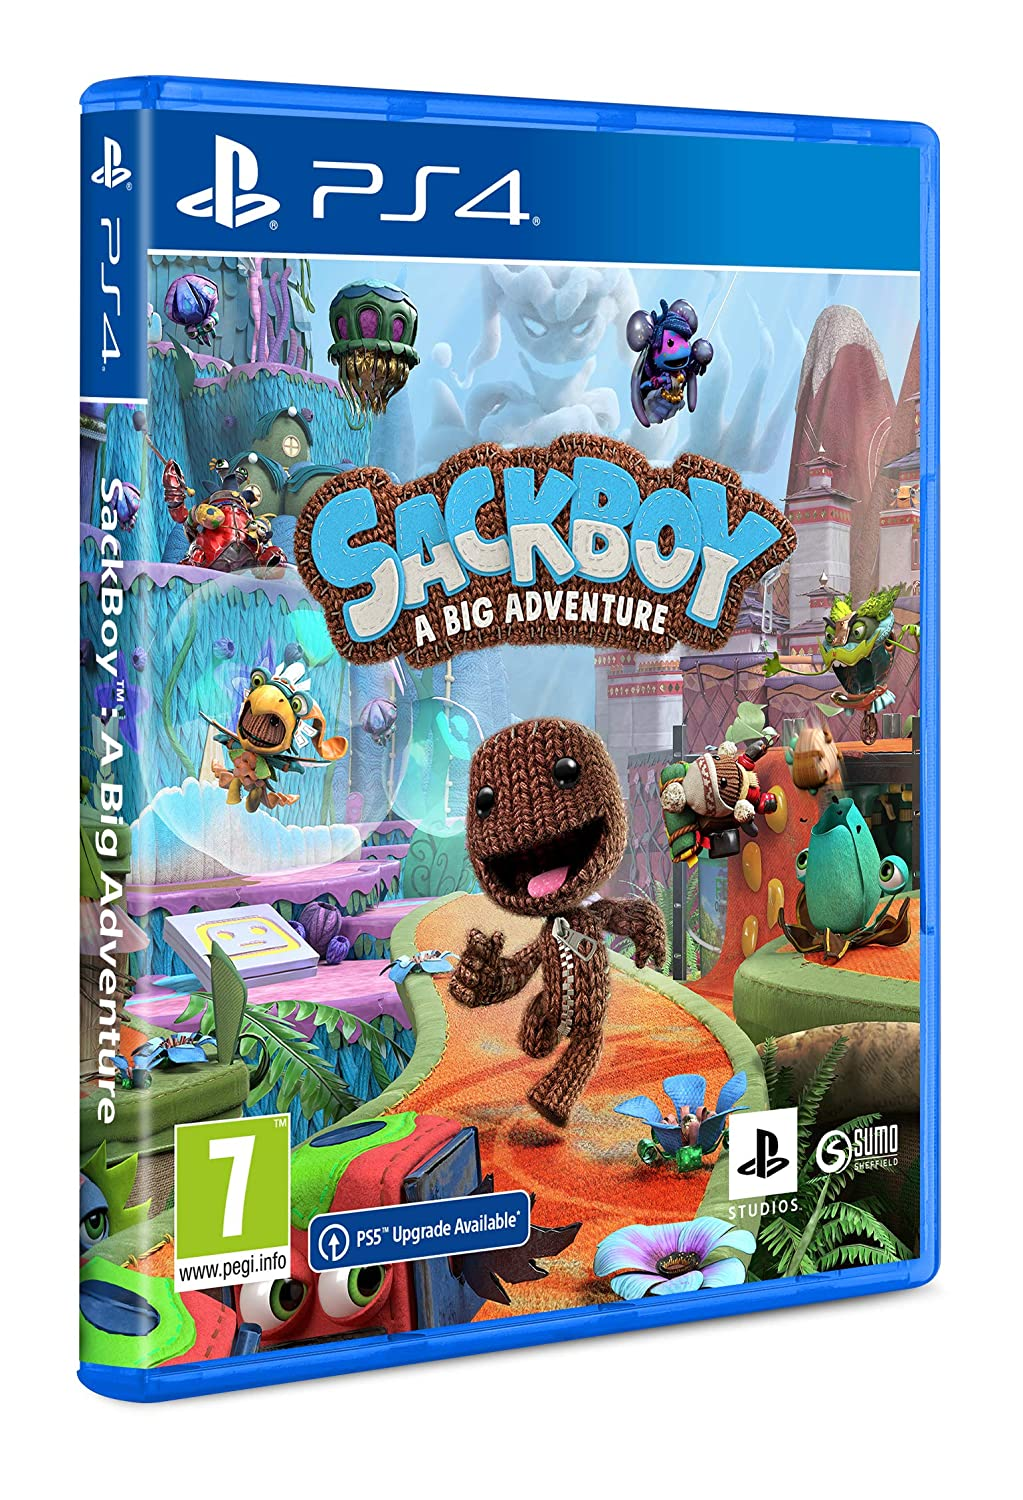 Miami Mall Sackboy: A Big SEAL limited product PS4 Adventure